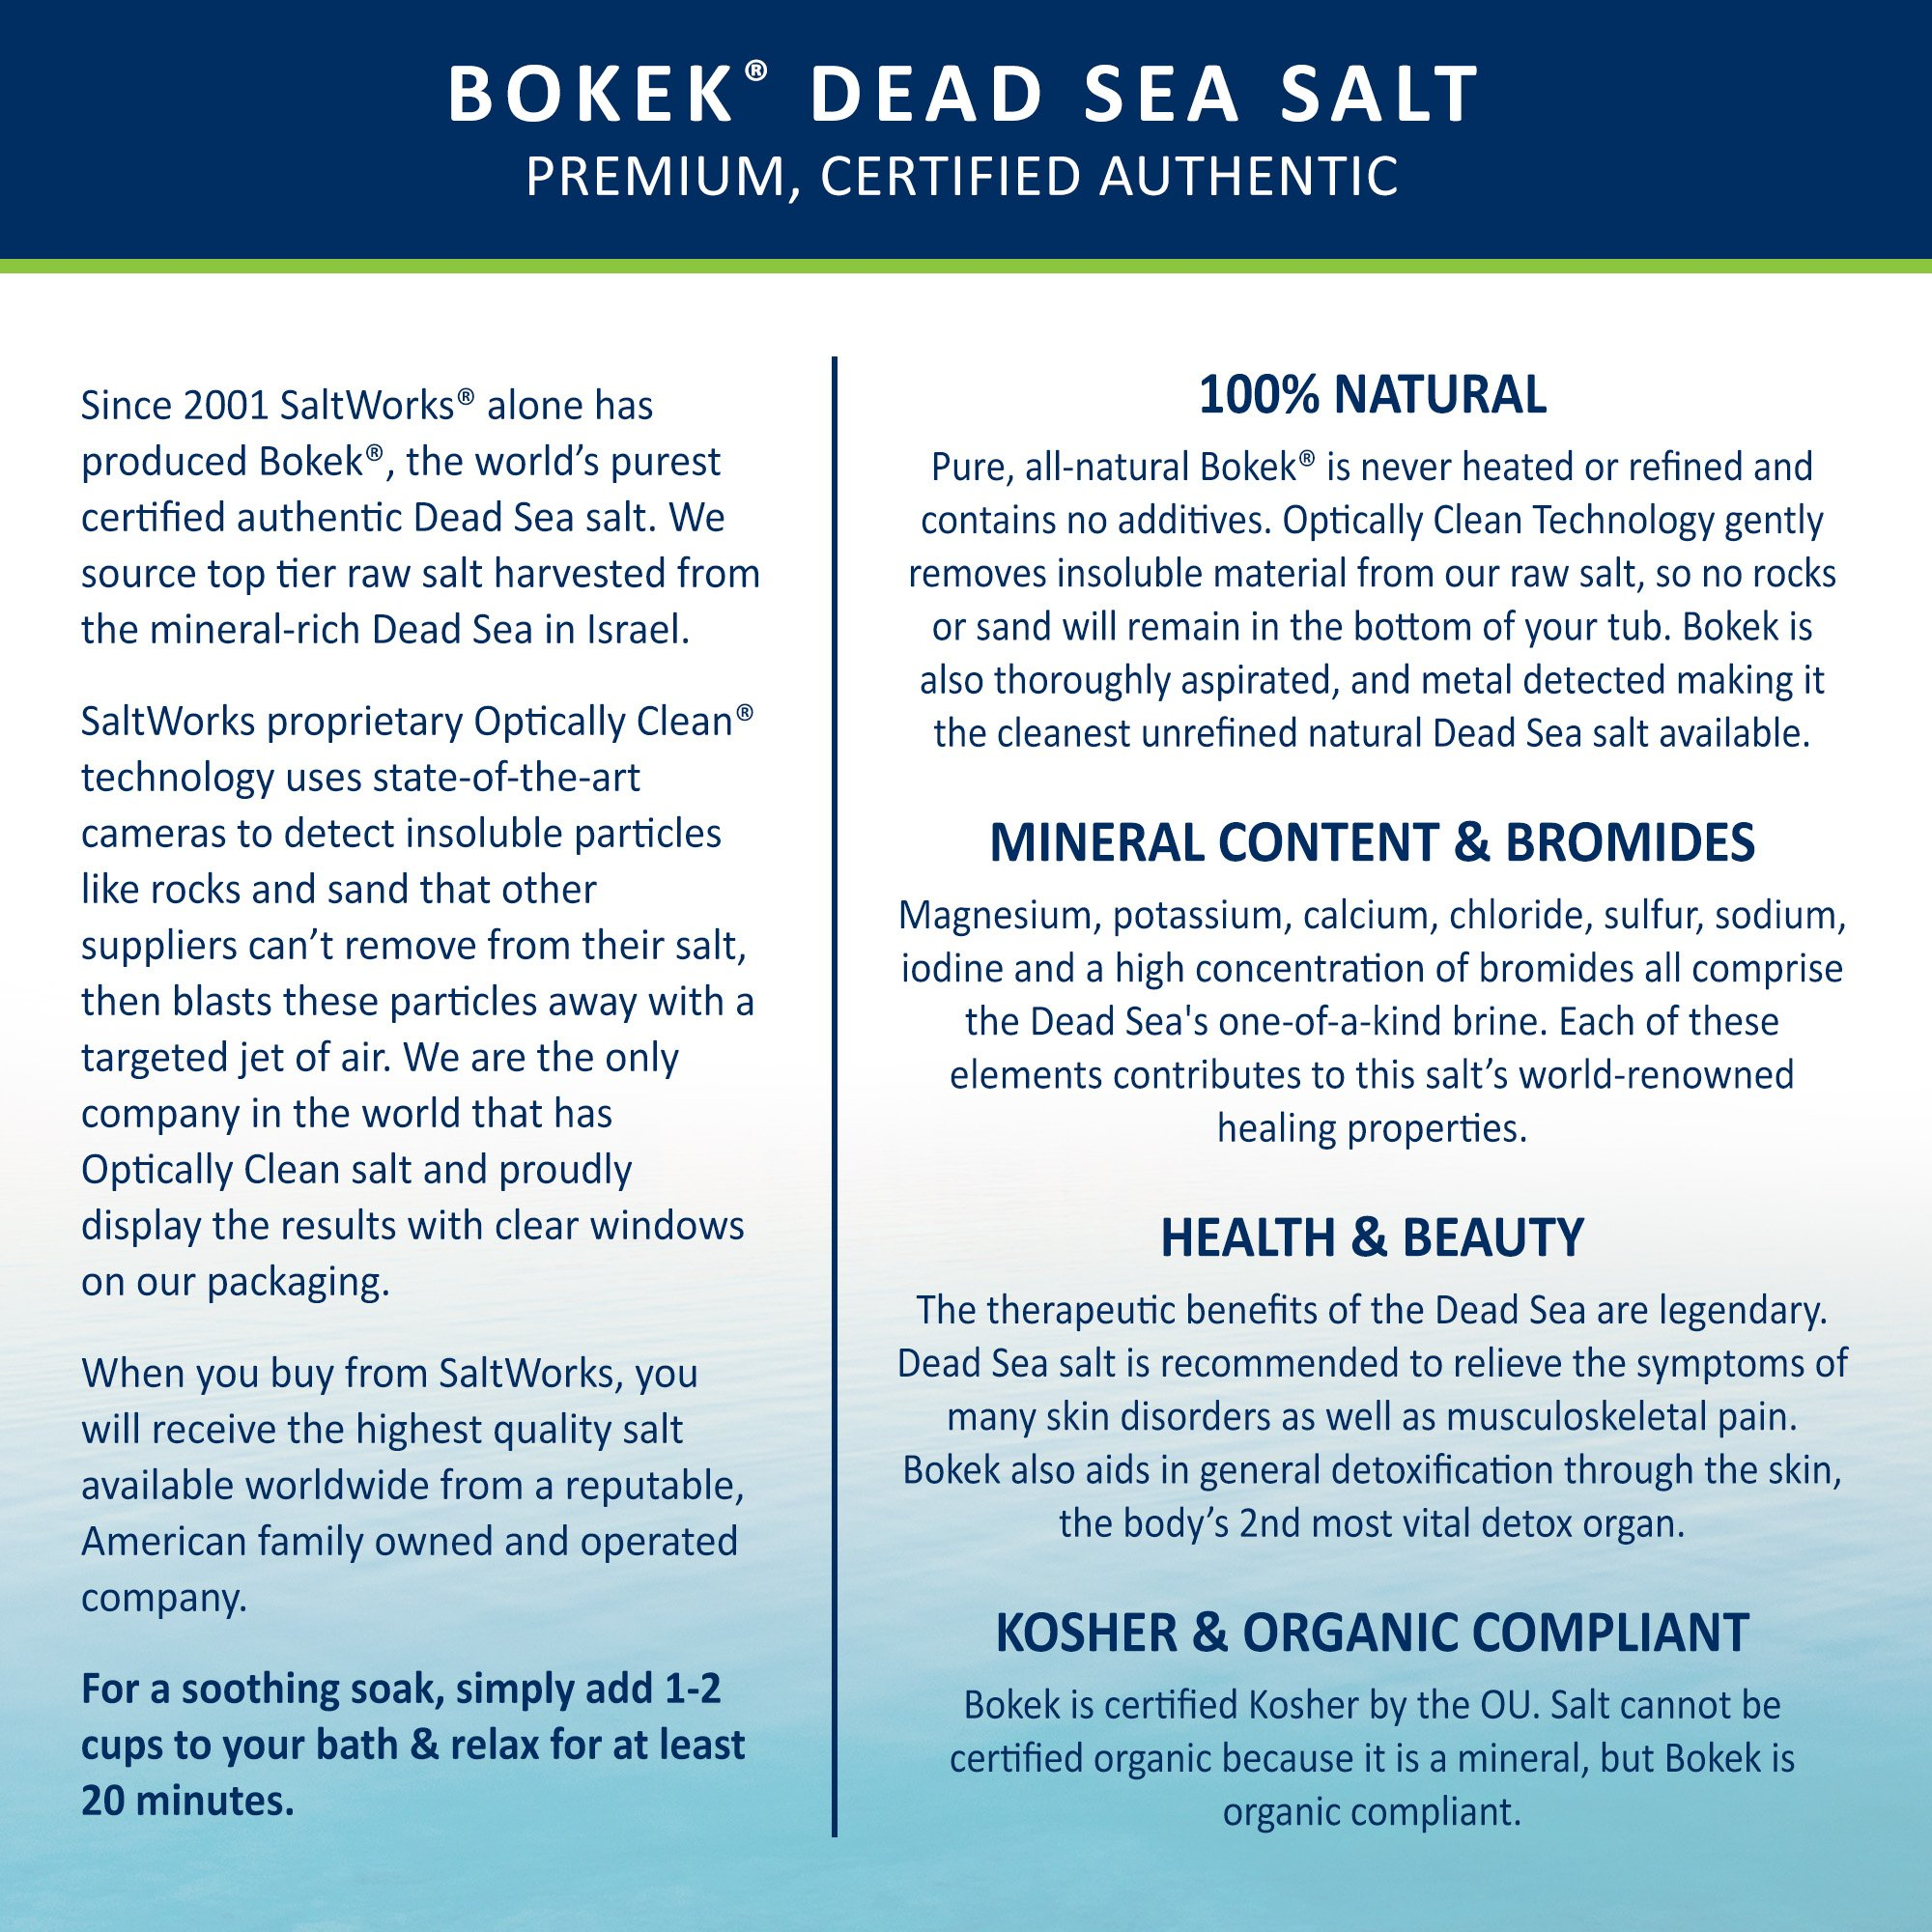 Bokek Dead Sea Salt, Fine - 55 lb Bag by SaltWorks (Image #3)